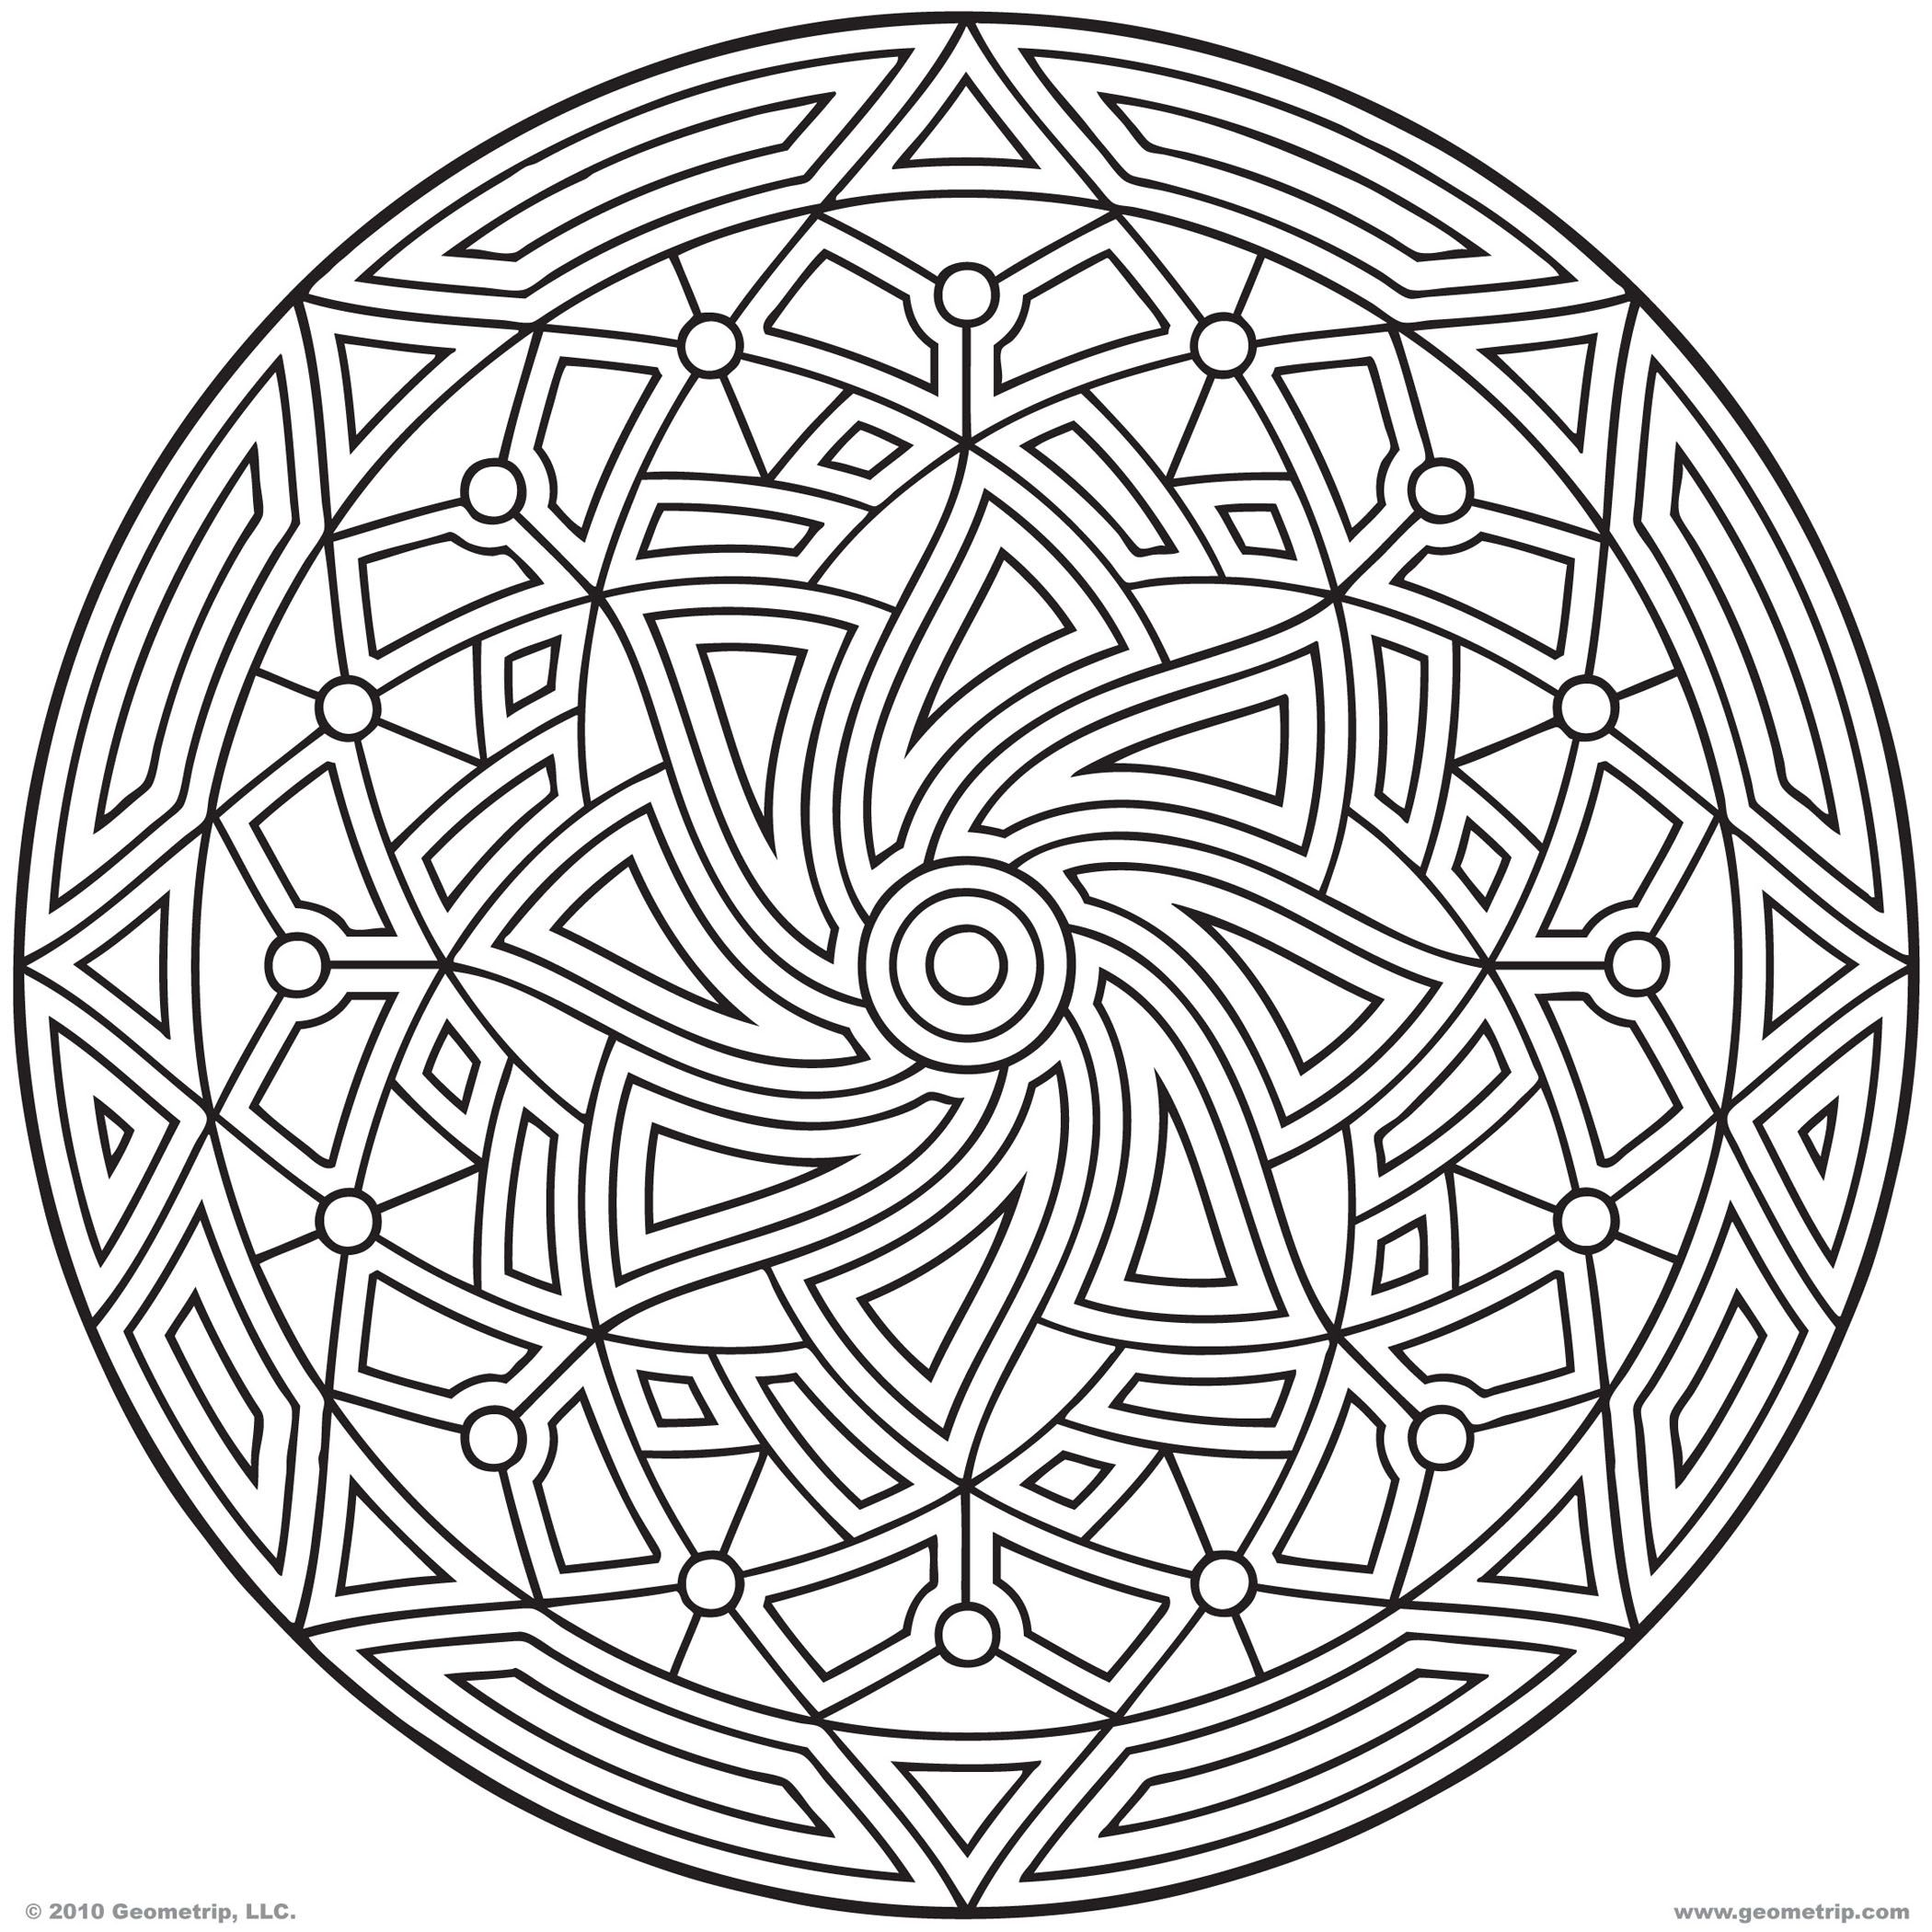 Heart Coloring Pages Ready For Download Or Print Description From